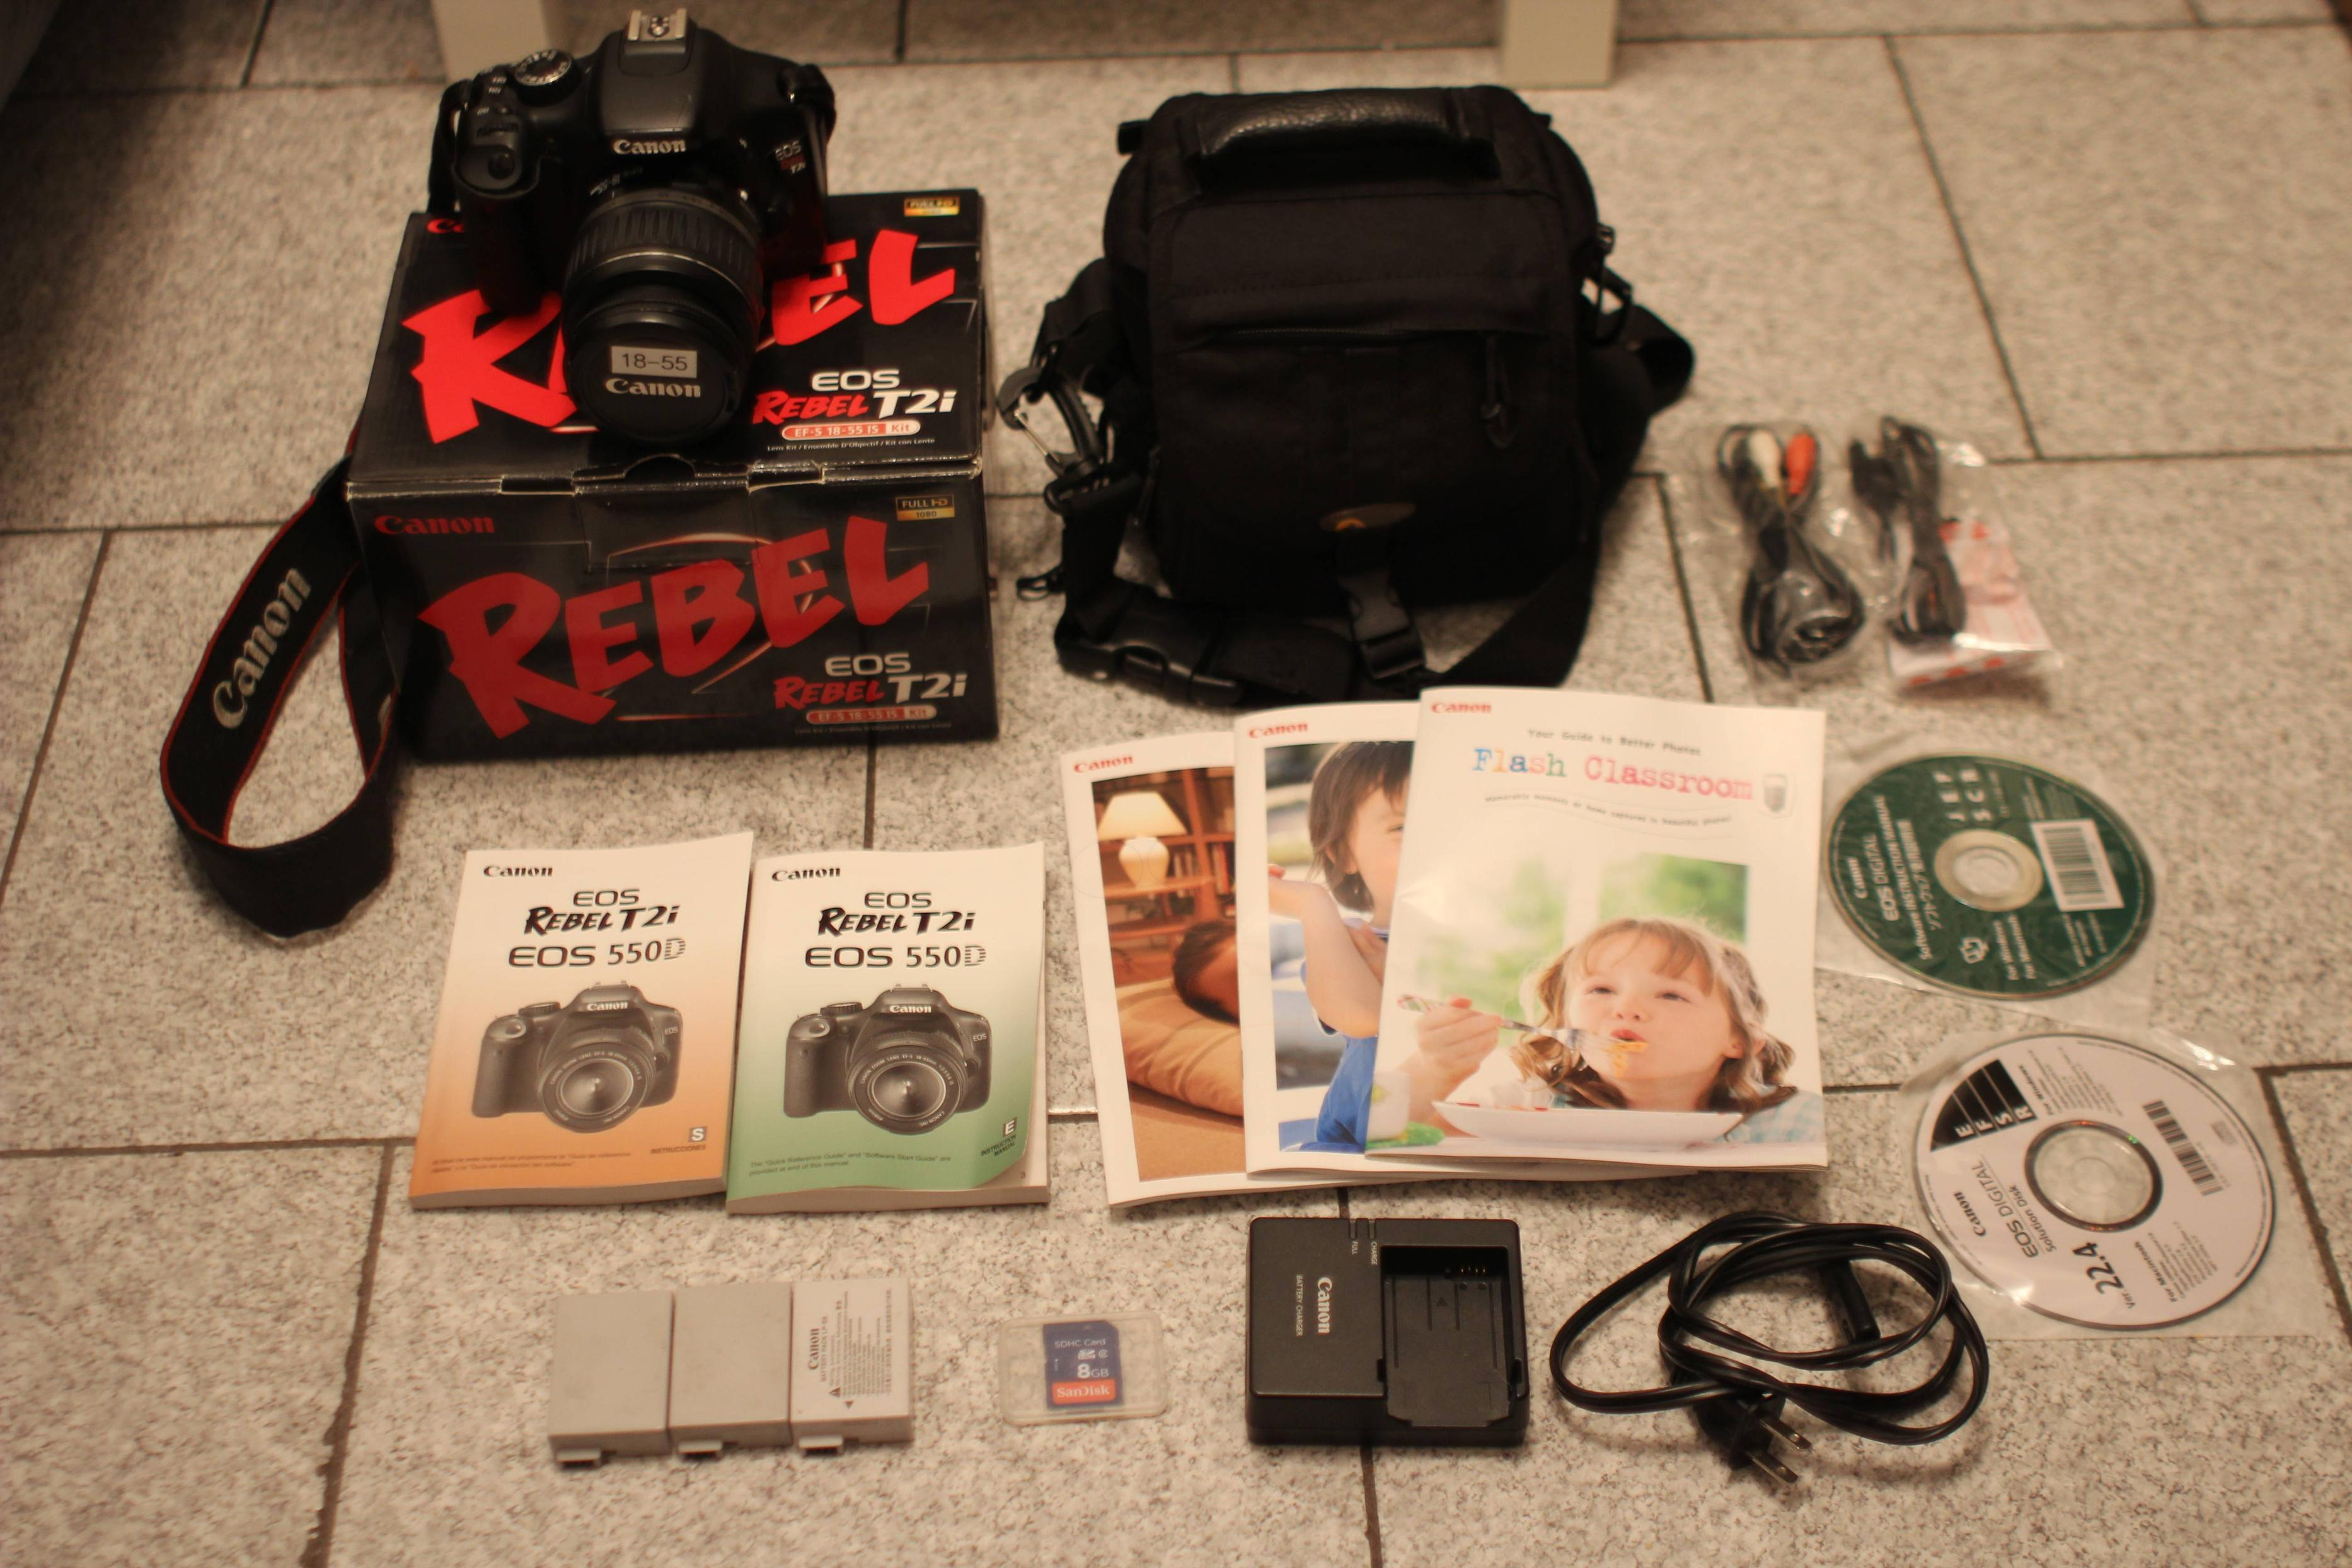 We're selling our Canon Rebel T2i, own a piece of WeAreChange history!